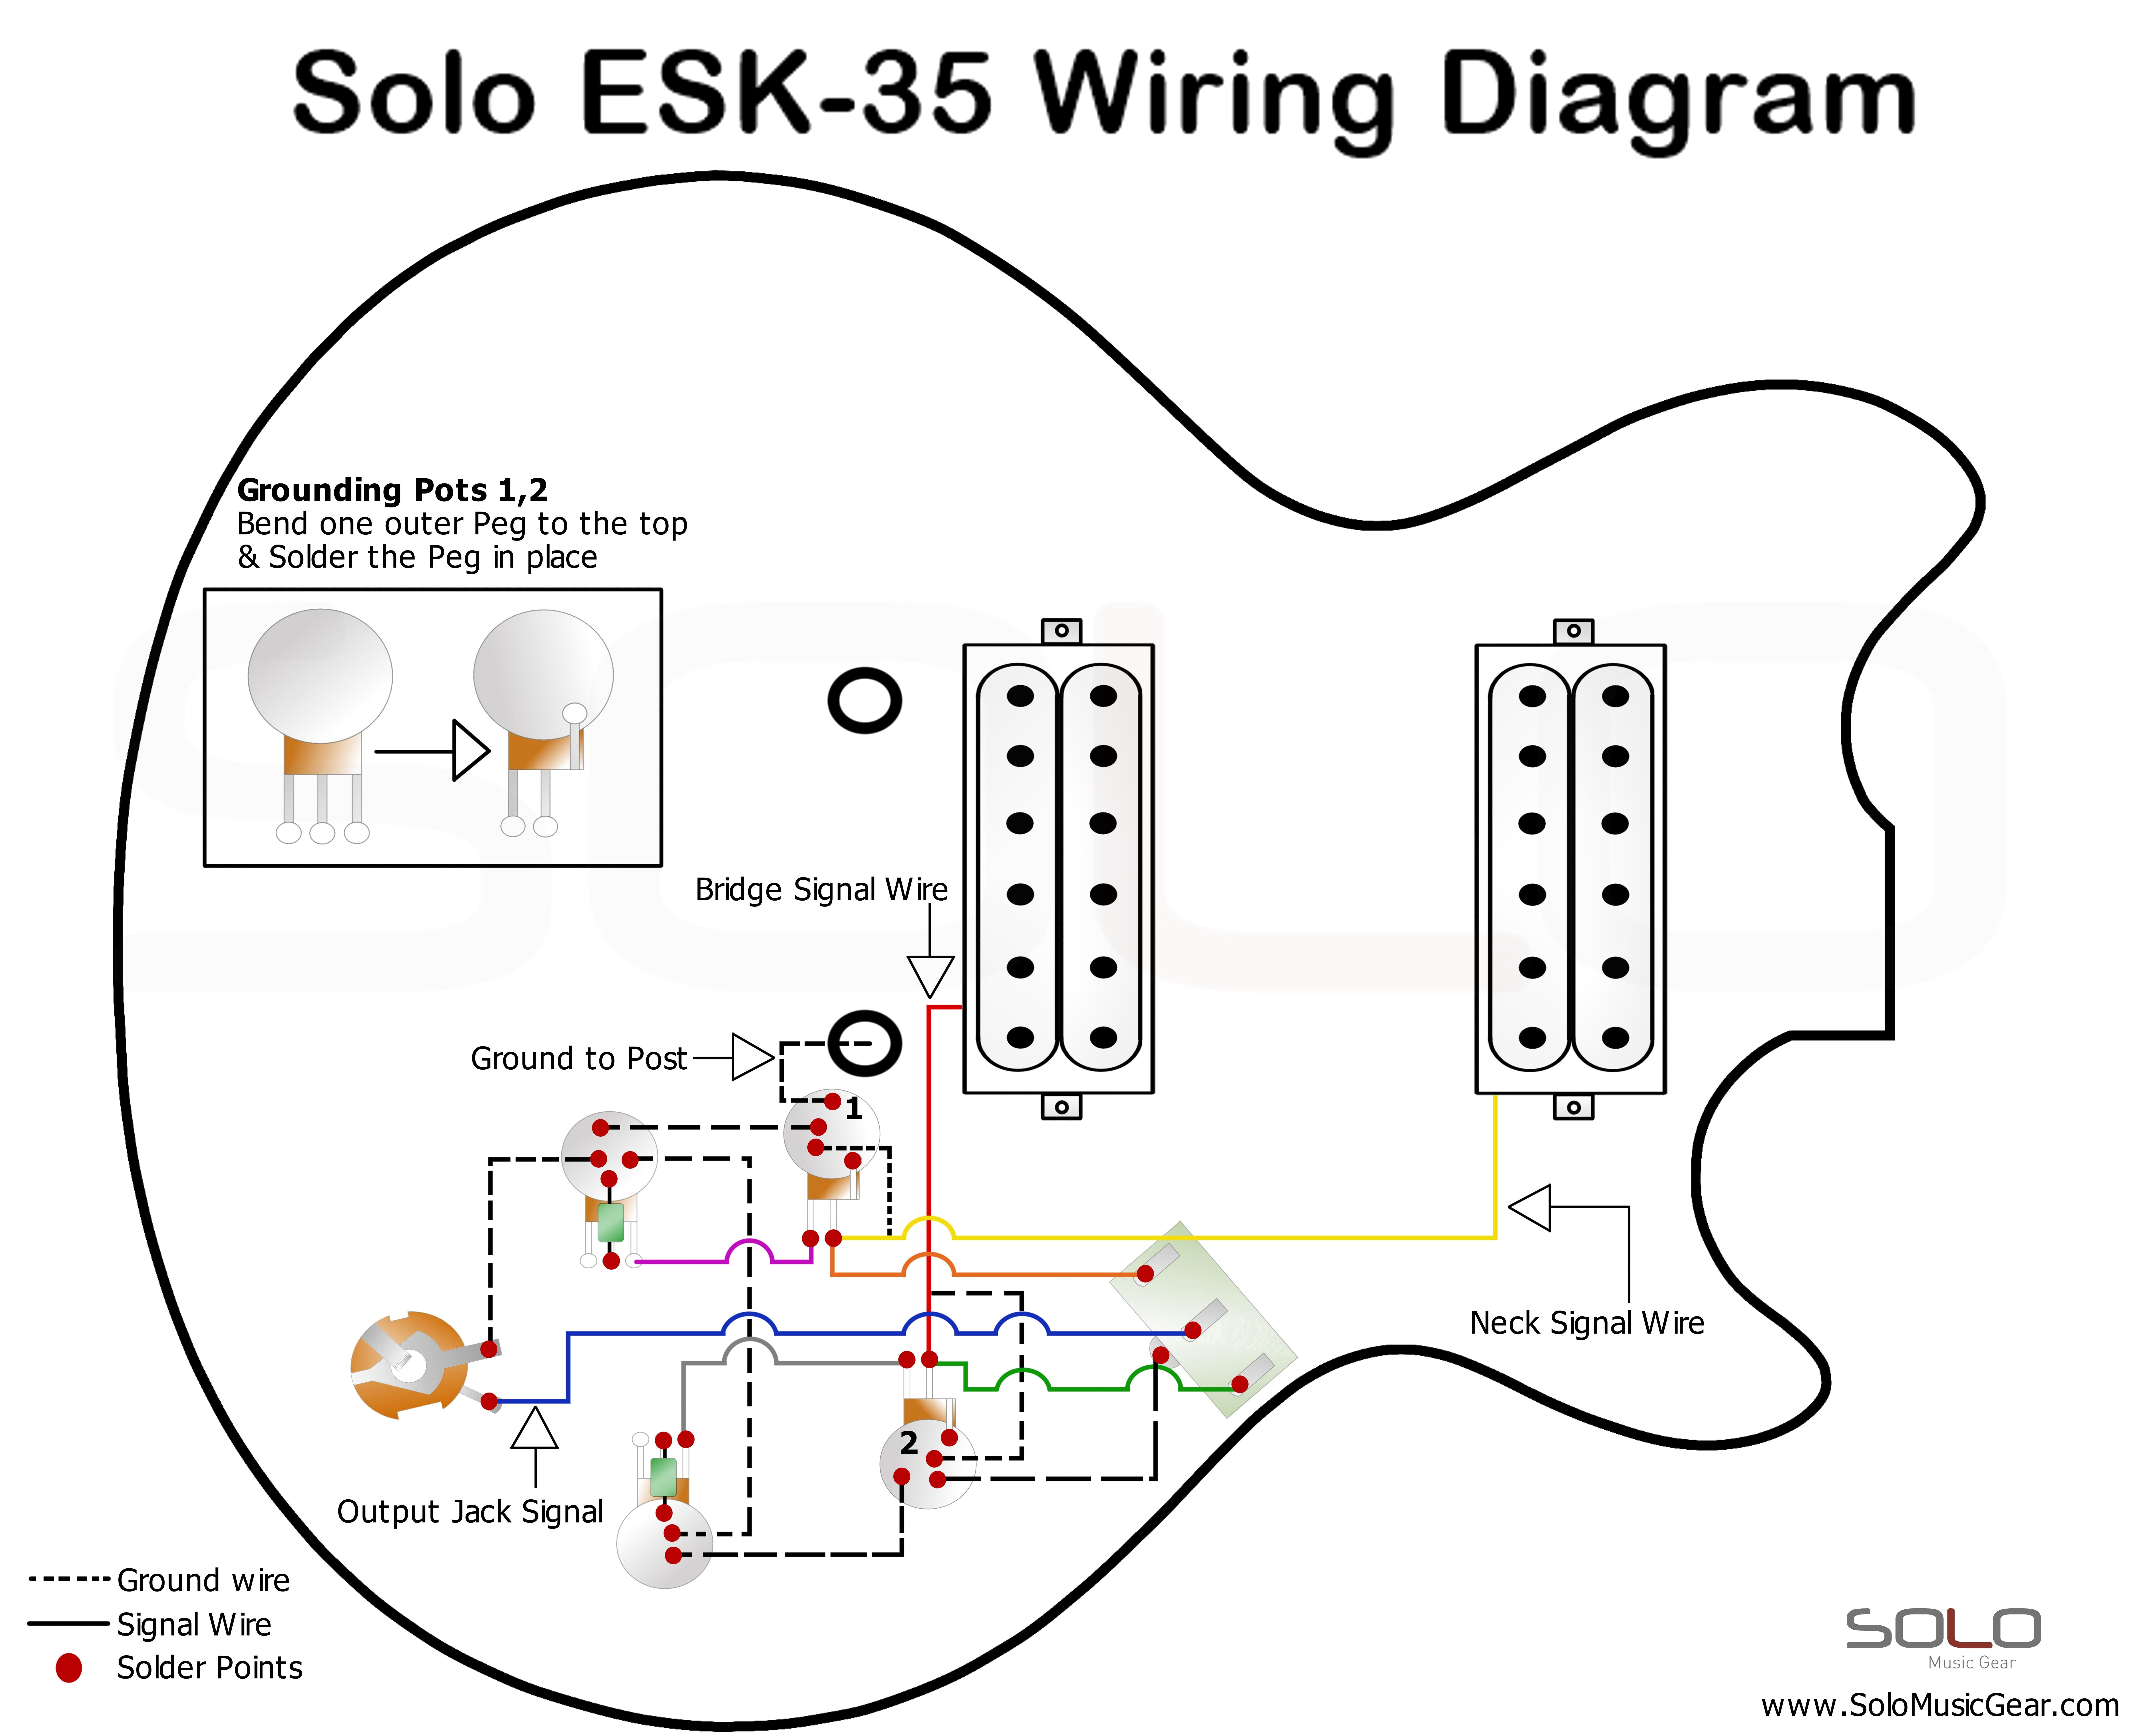 Solo Sg Wiring Diagram Car Diagrams Explained Sl 3000 Ul Kw Rg Jp Rh Banyan Palace Com Kit